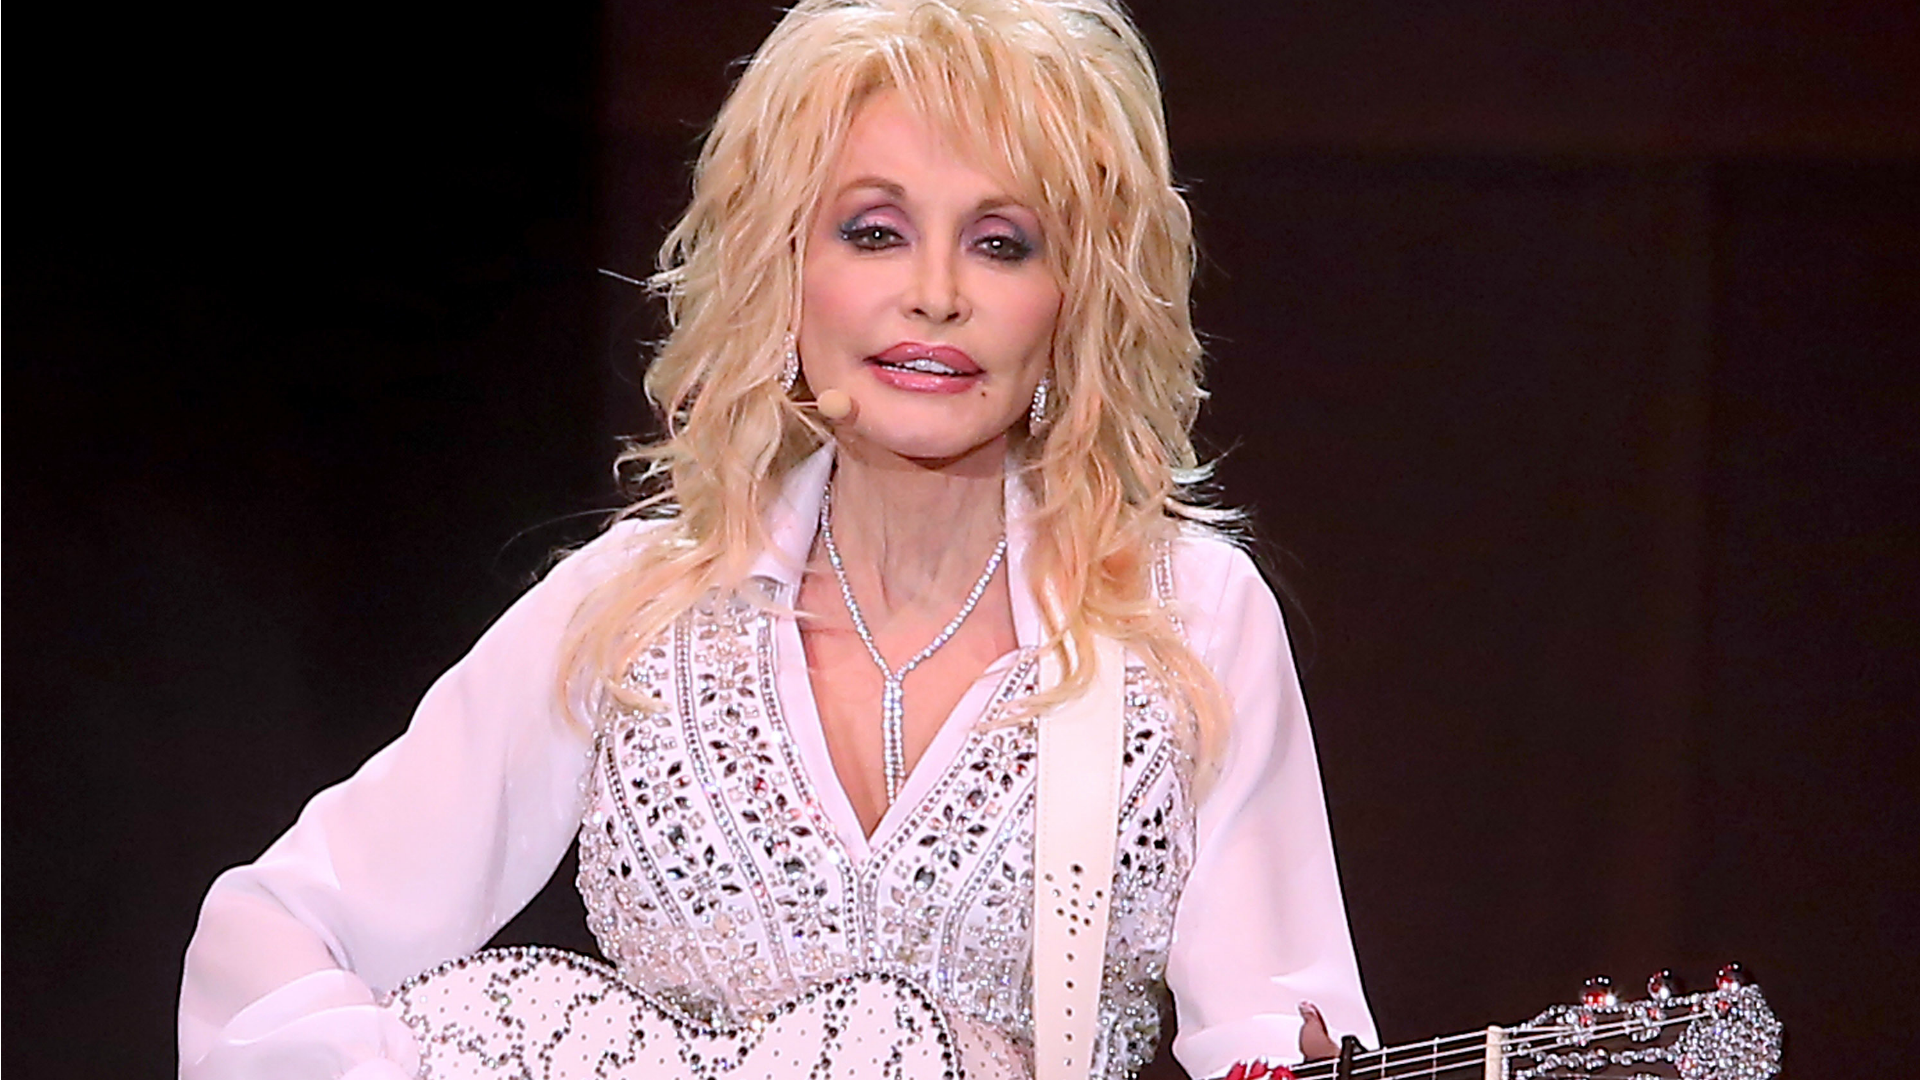 Dolly Parton reveals that her husband isn't a fan of her music